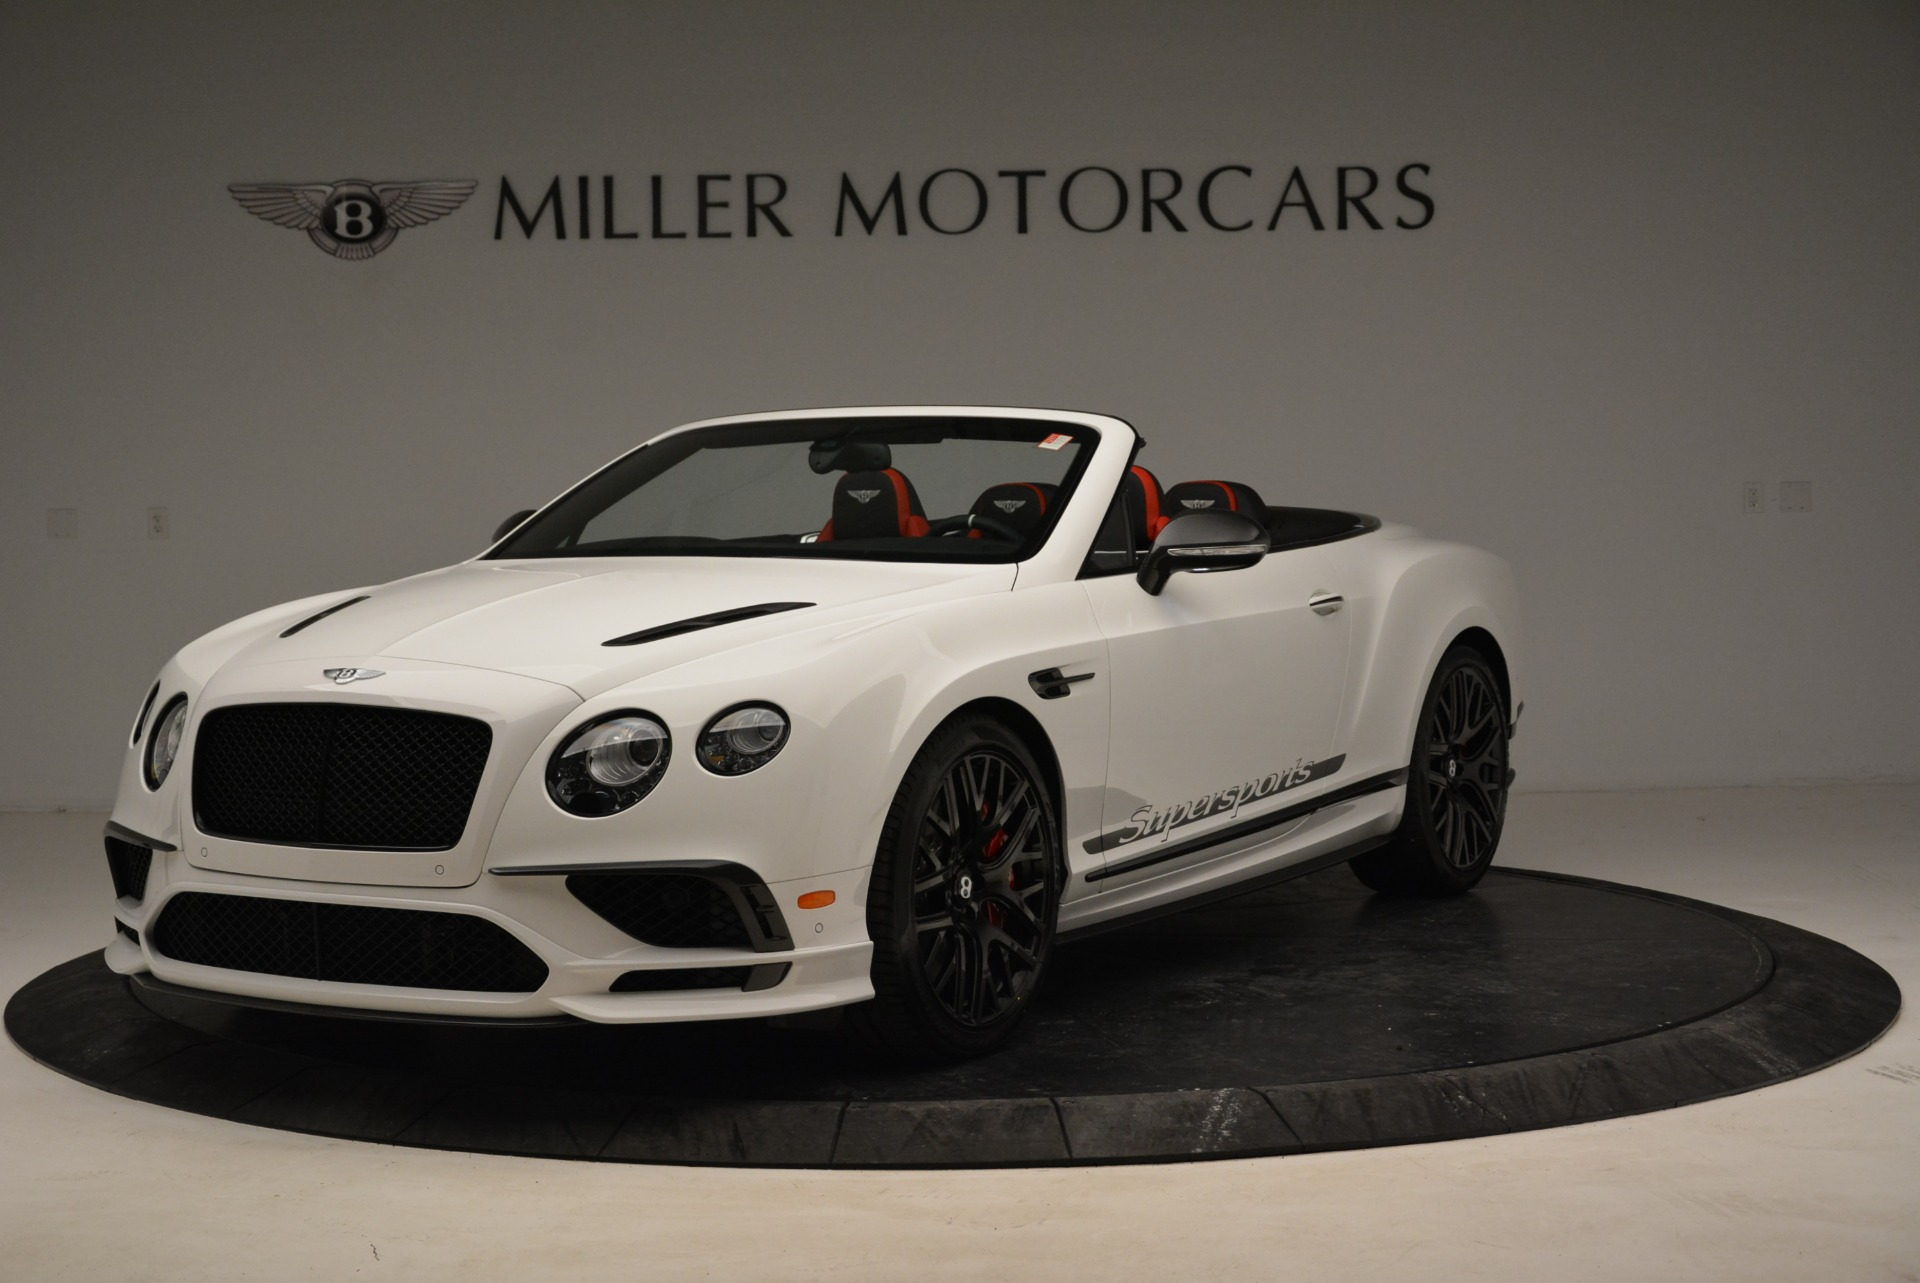 Used 2018 Bentley Continental GTC Supersports Convertible for sale Sold at Alfa Romeo of Westport in Westport CT 06880 1